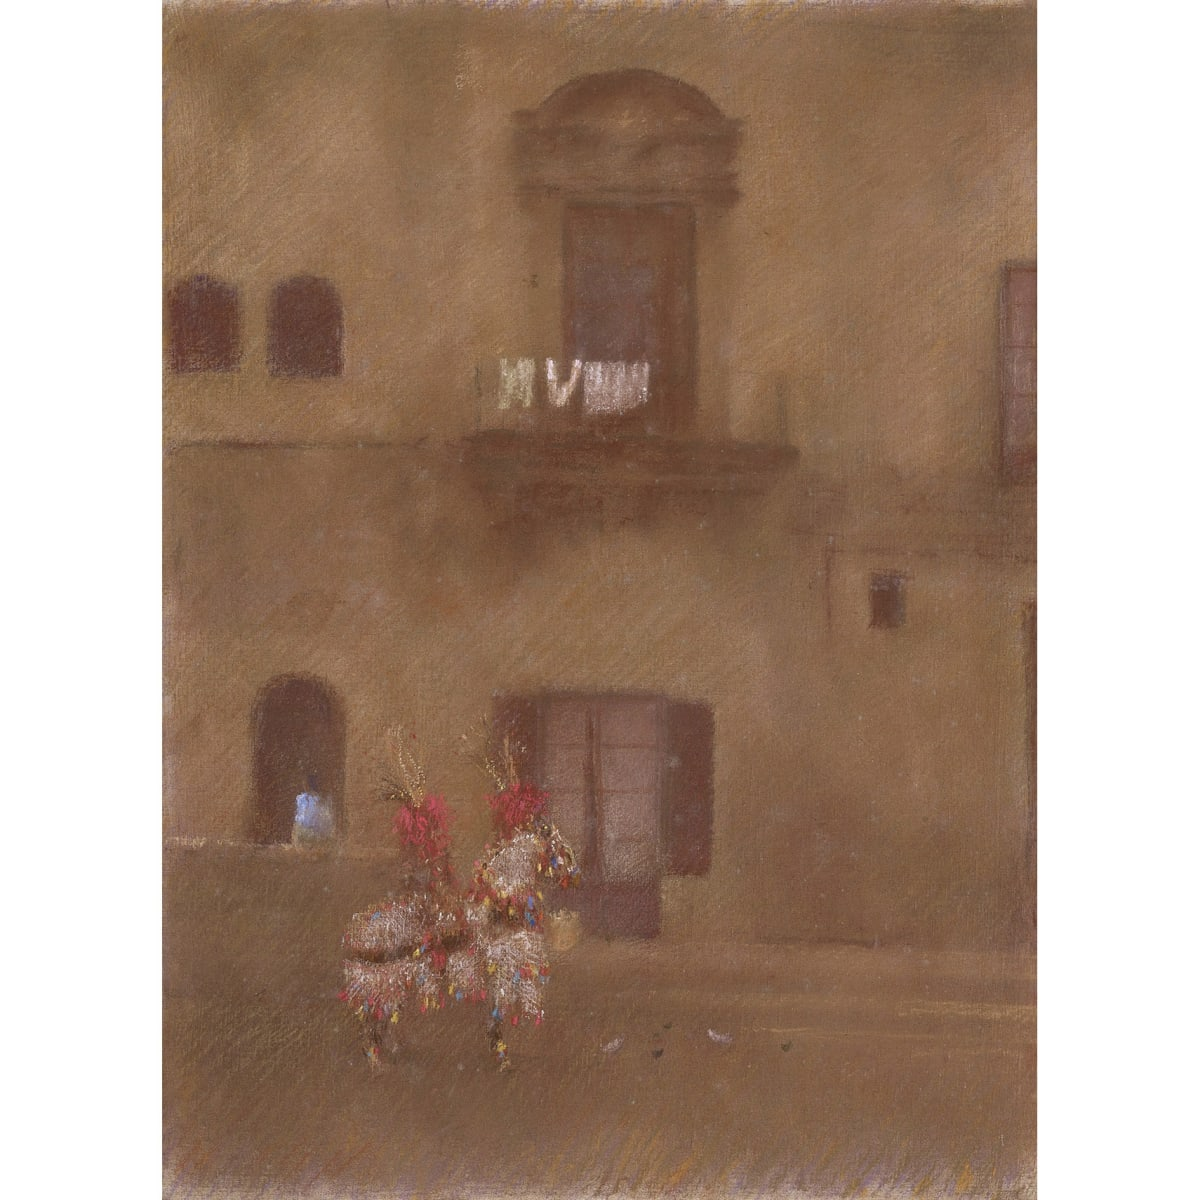 John Halliday Lunch Break, Palermo inscribed and titled on frame verso pastel on linen laid on board 40 x 30 inches